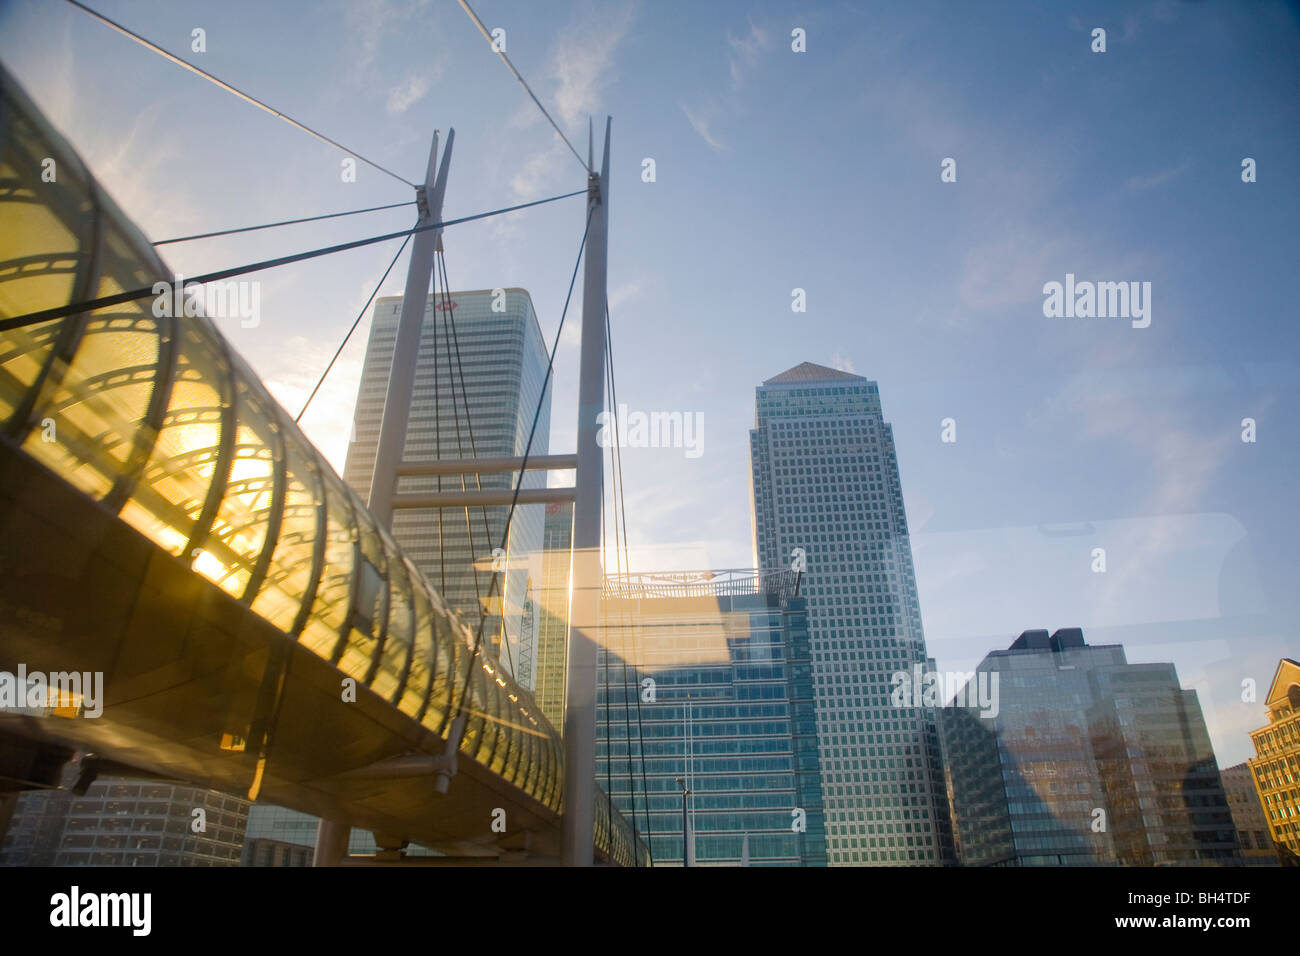 canary wharf docklands light railway DLR  foot bridge seen from the train - Stock Image